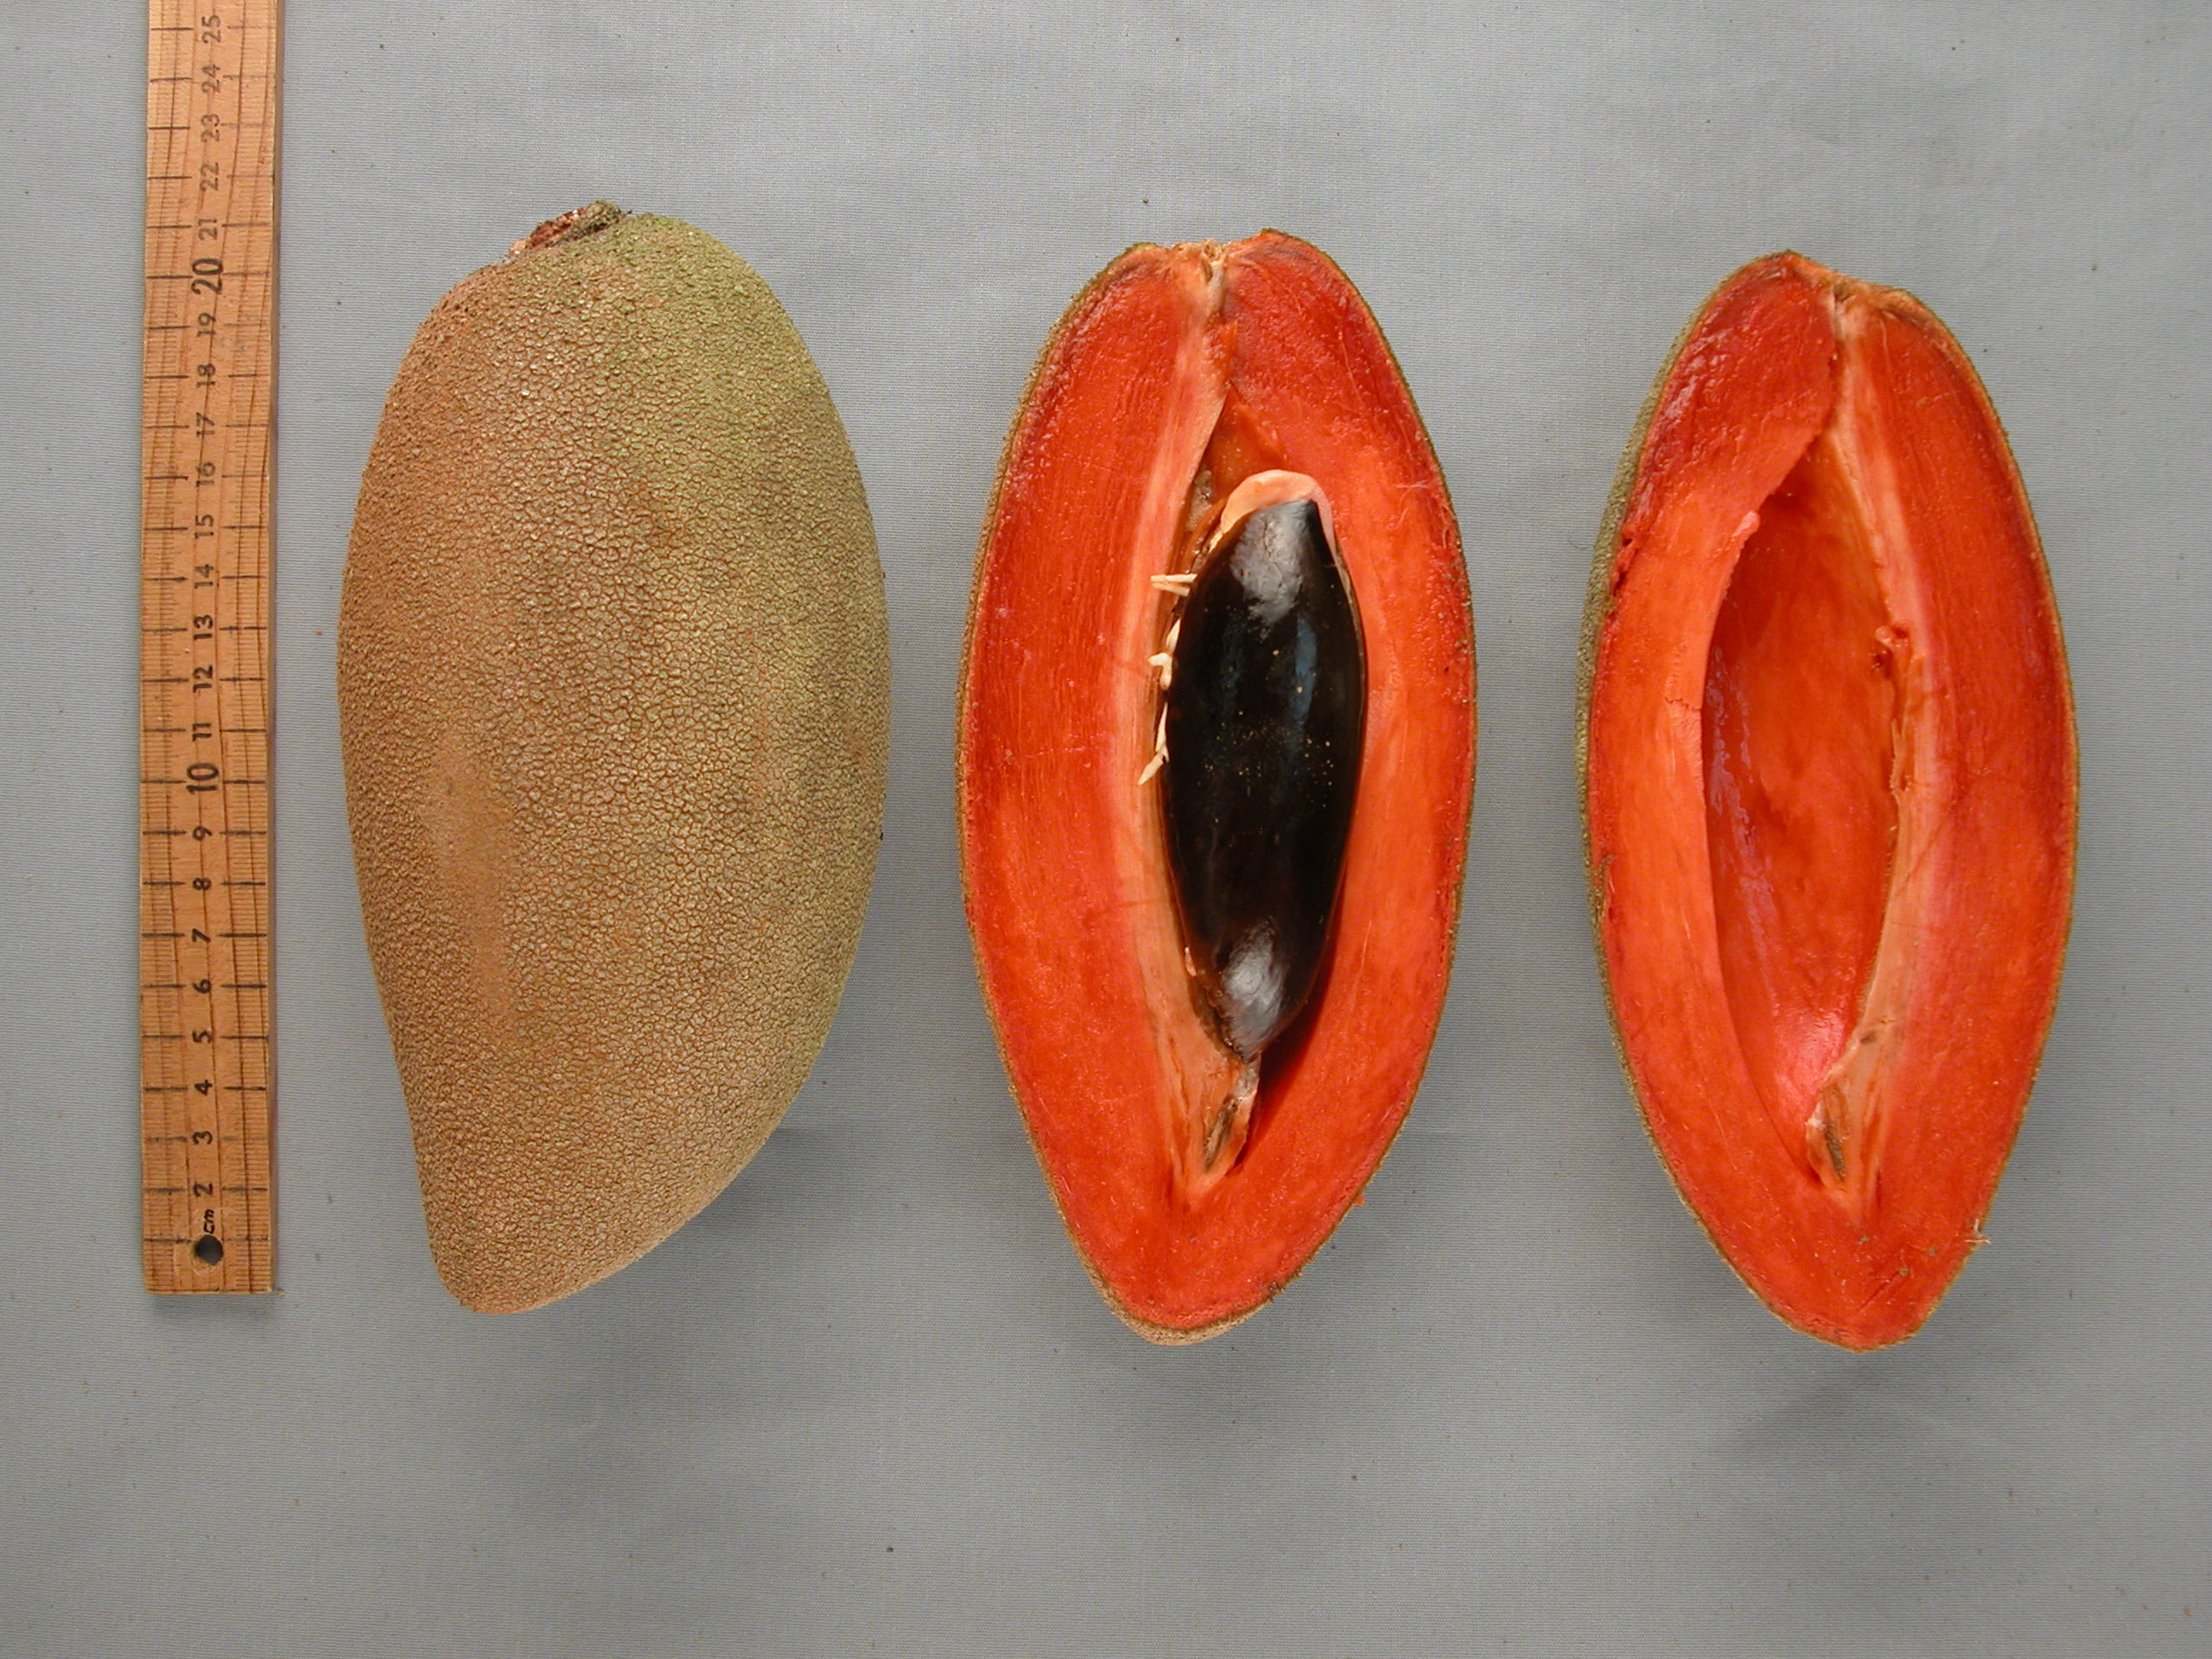 how to say mamey in english